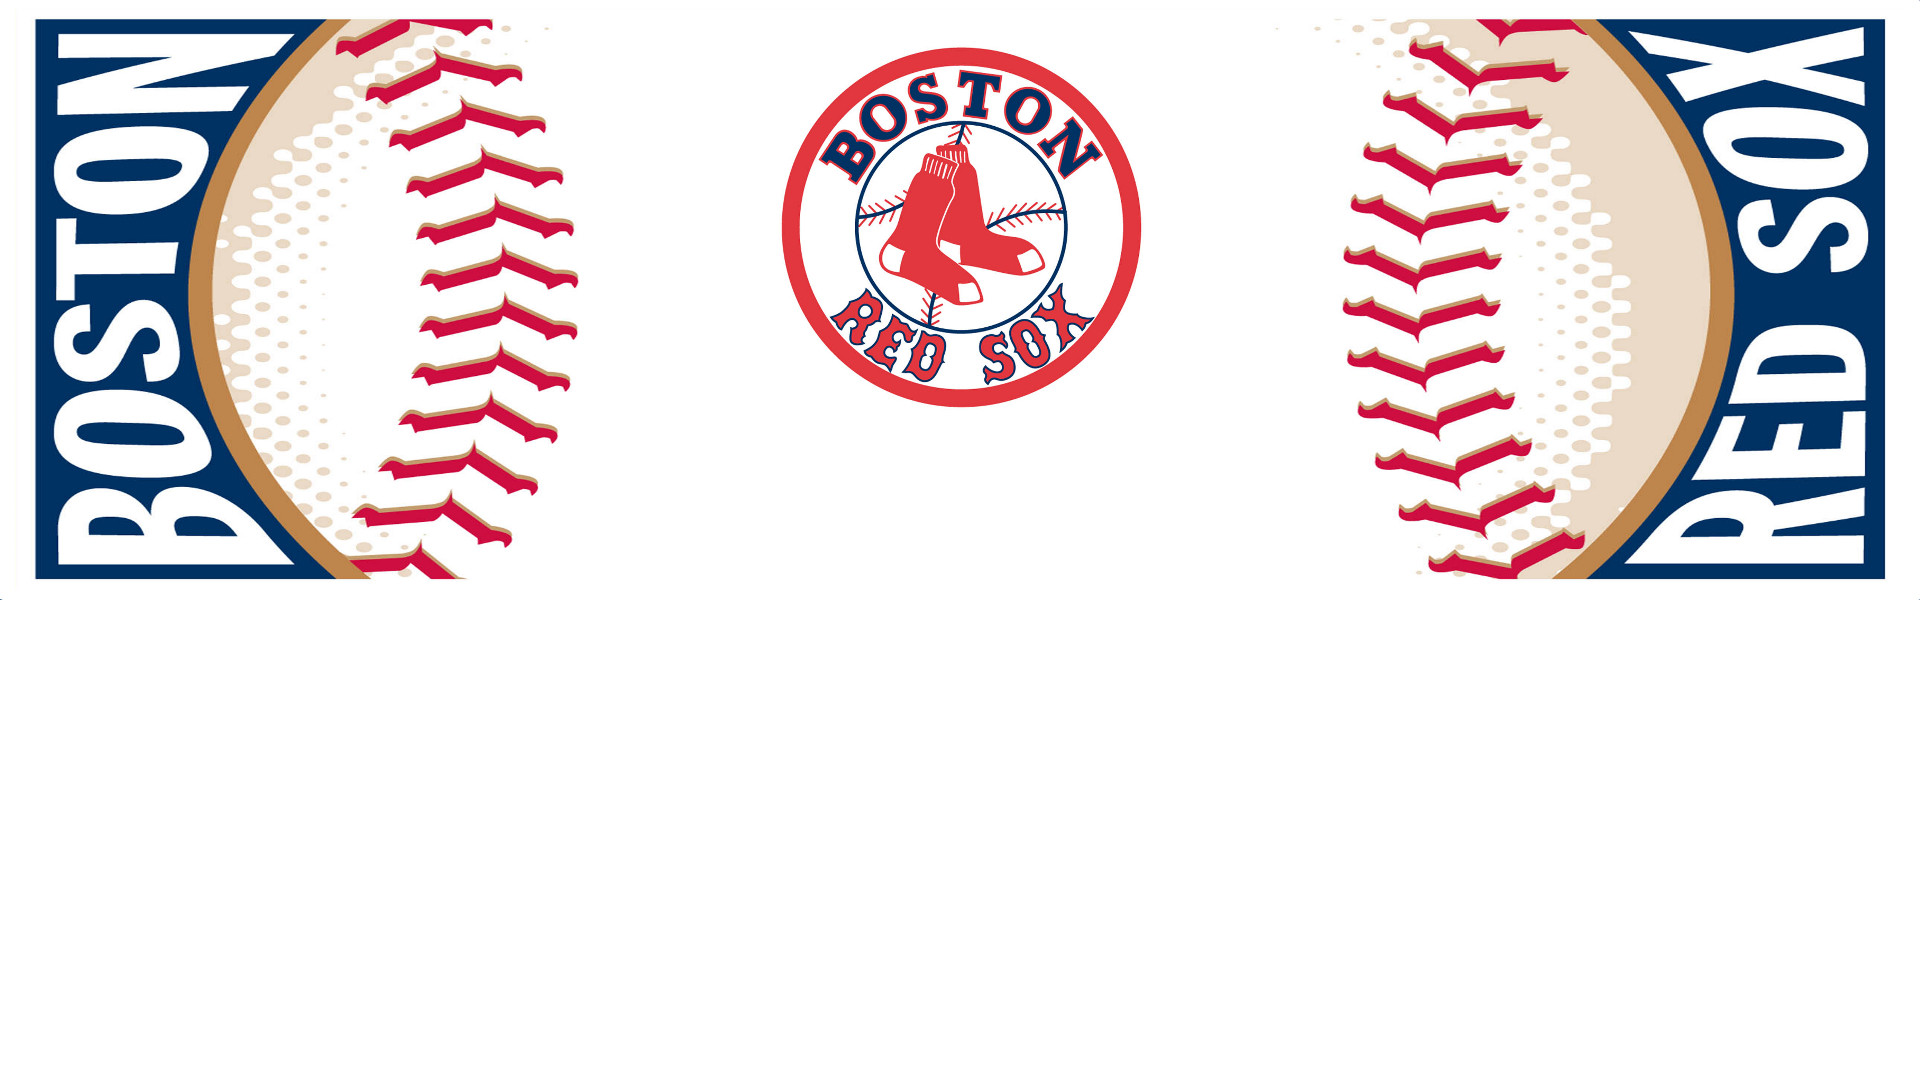 1920x1080 Red Sox Logo Wallpapers.